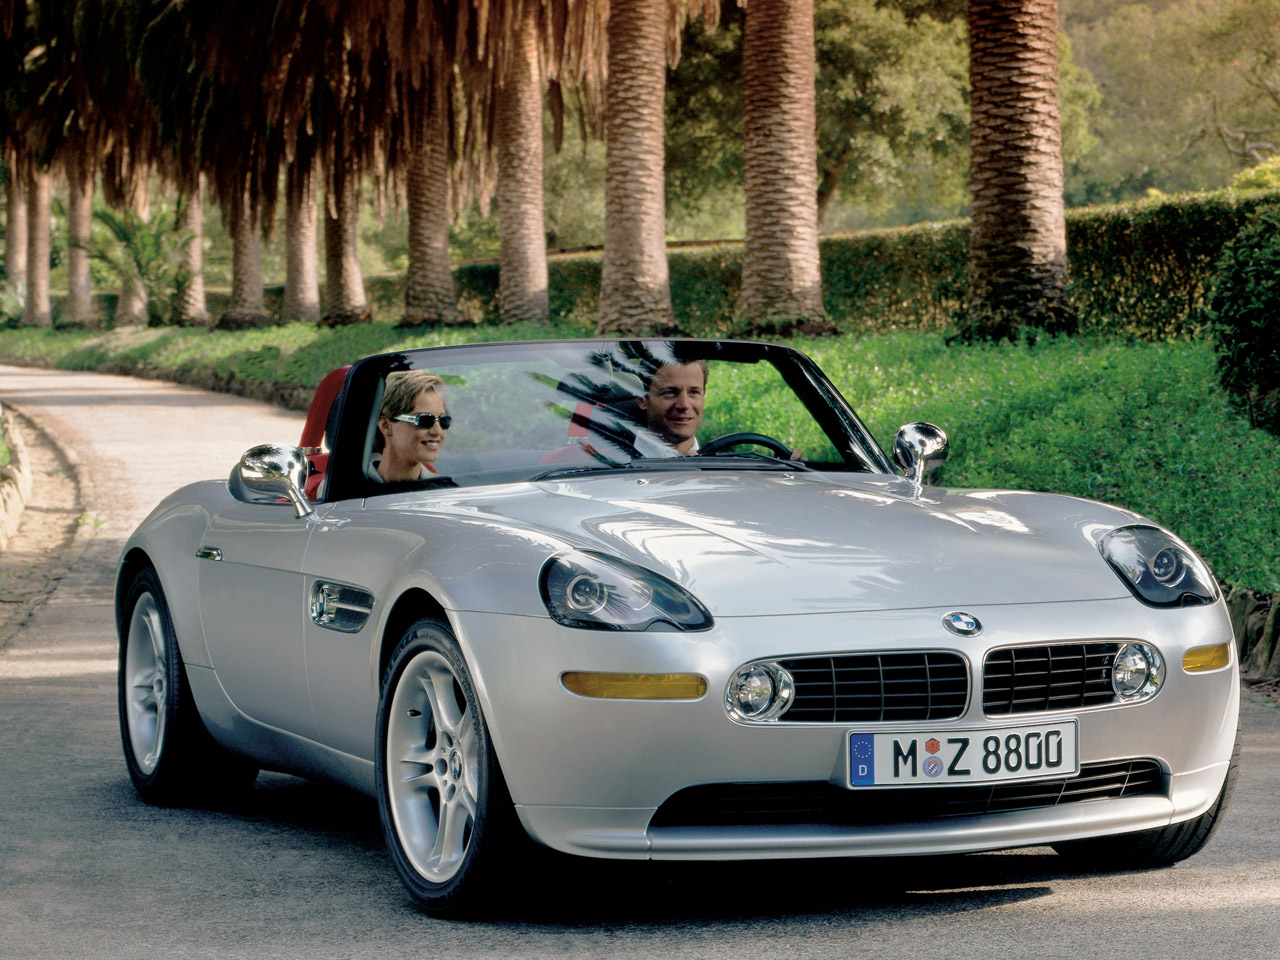 Bmw Z8 Top Gear Wiki Fandom Powered By Wikia